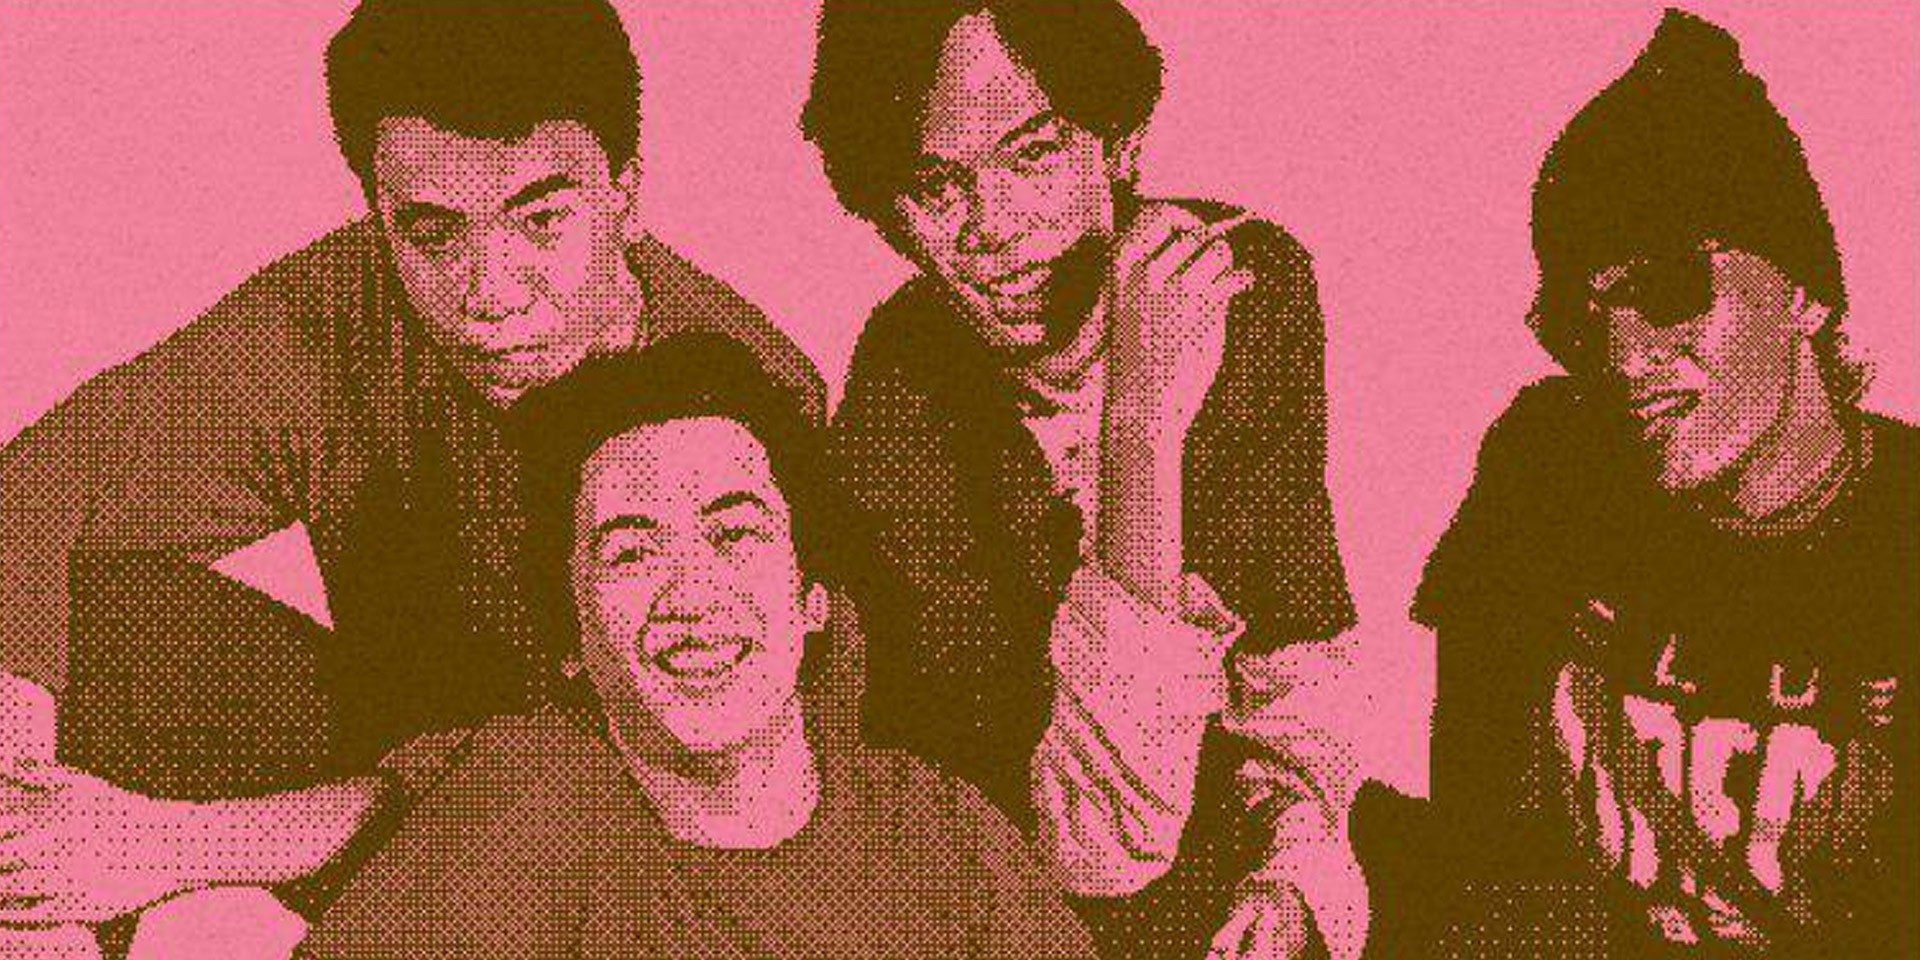 Eraserheads to launch Ultraelectromagneticpop! anniversary merch